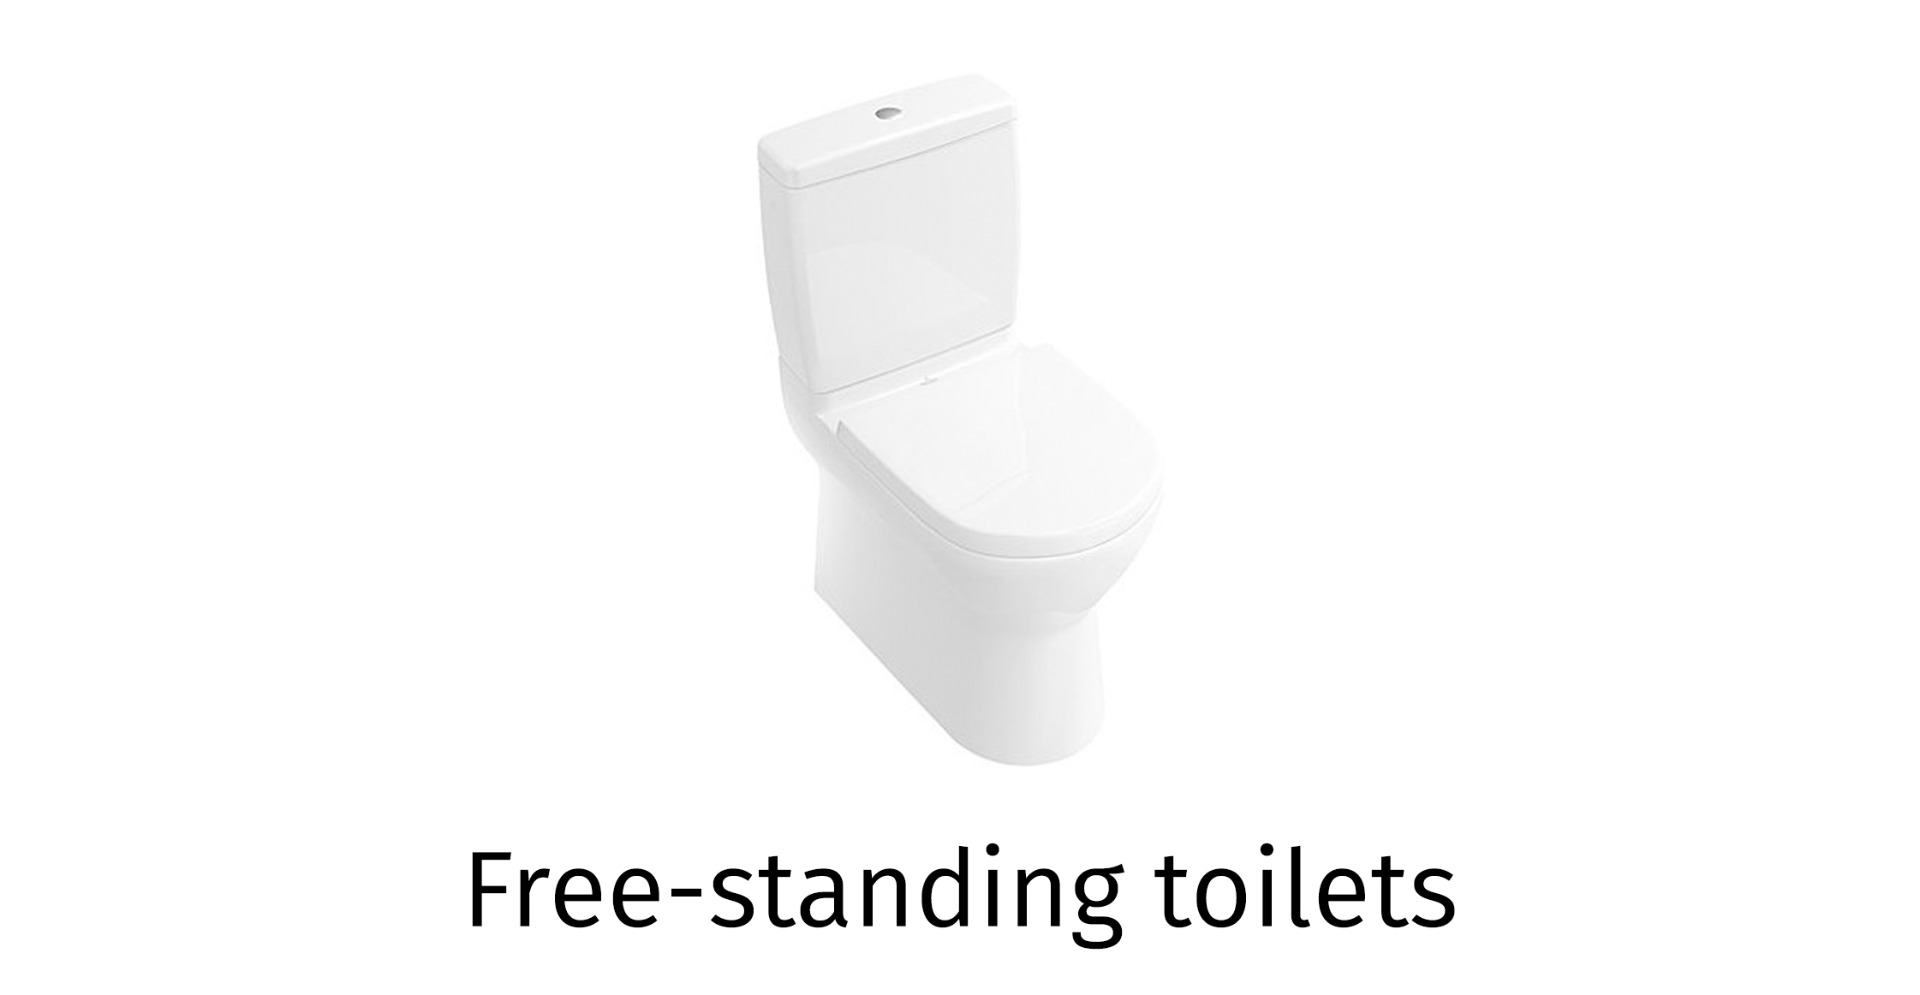 Free-standing toilet